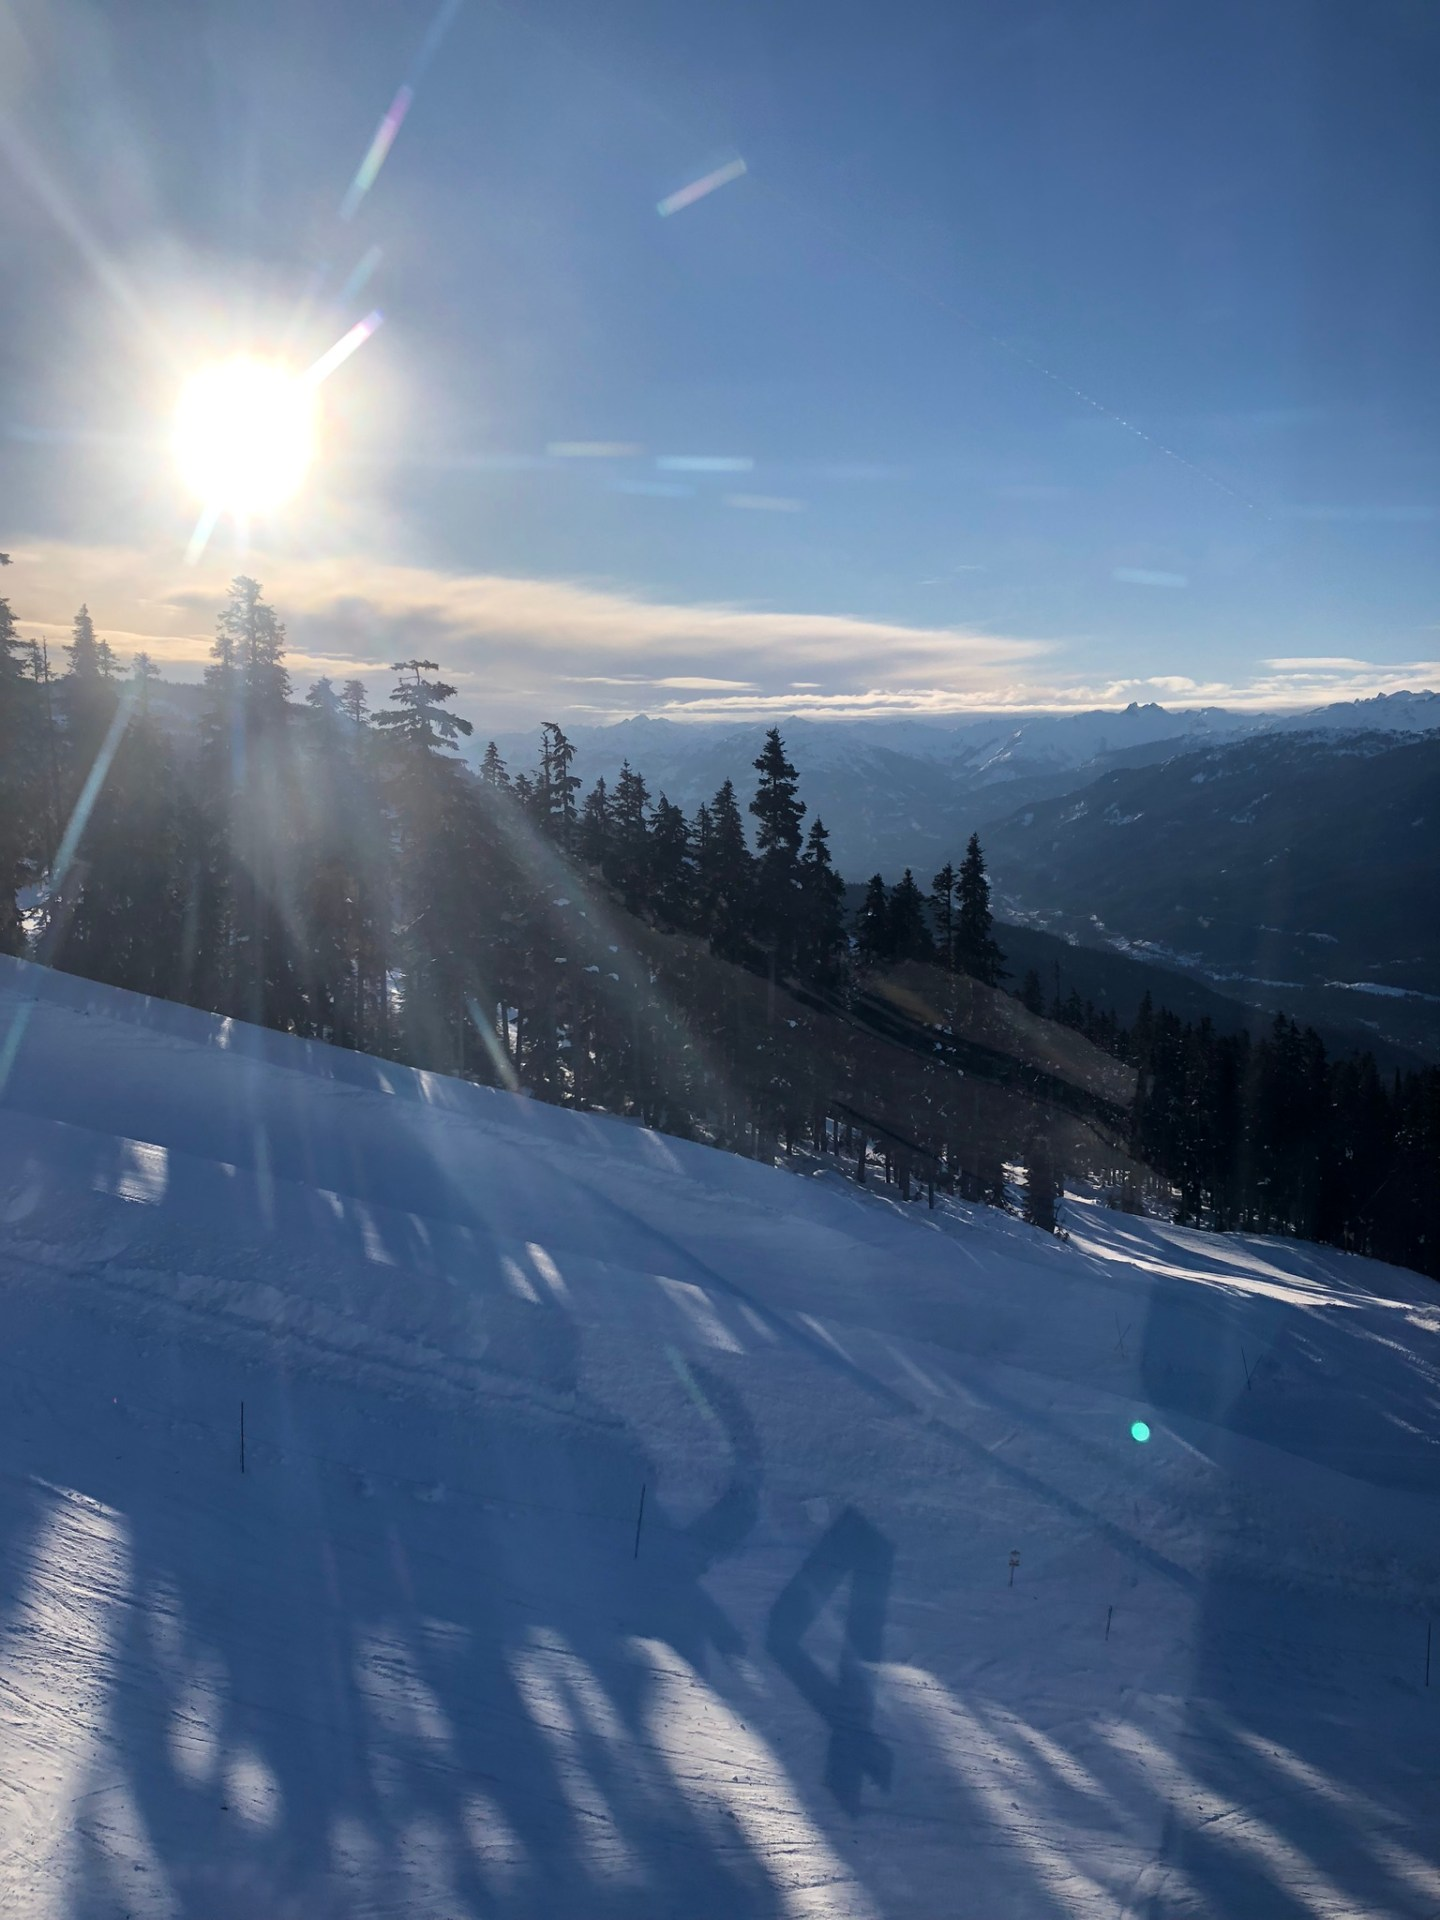 Views over Whistler, British Columbia from the ski lift